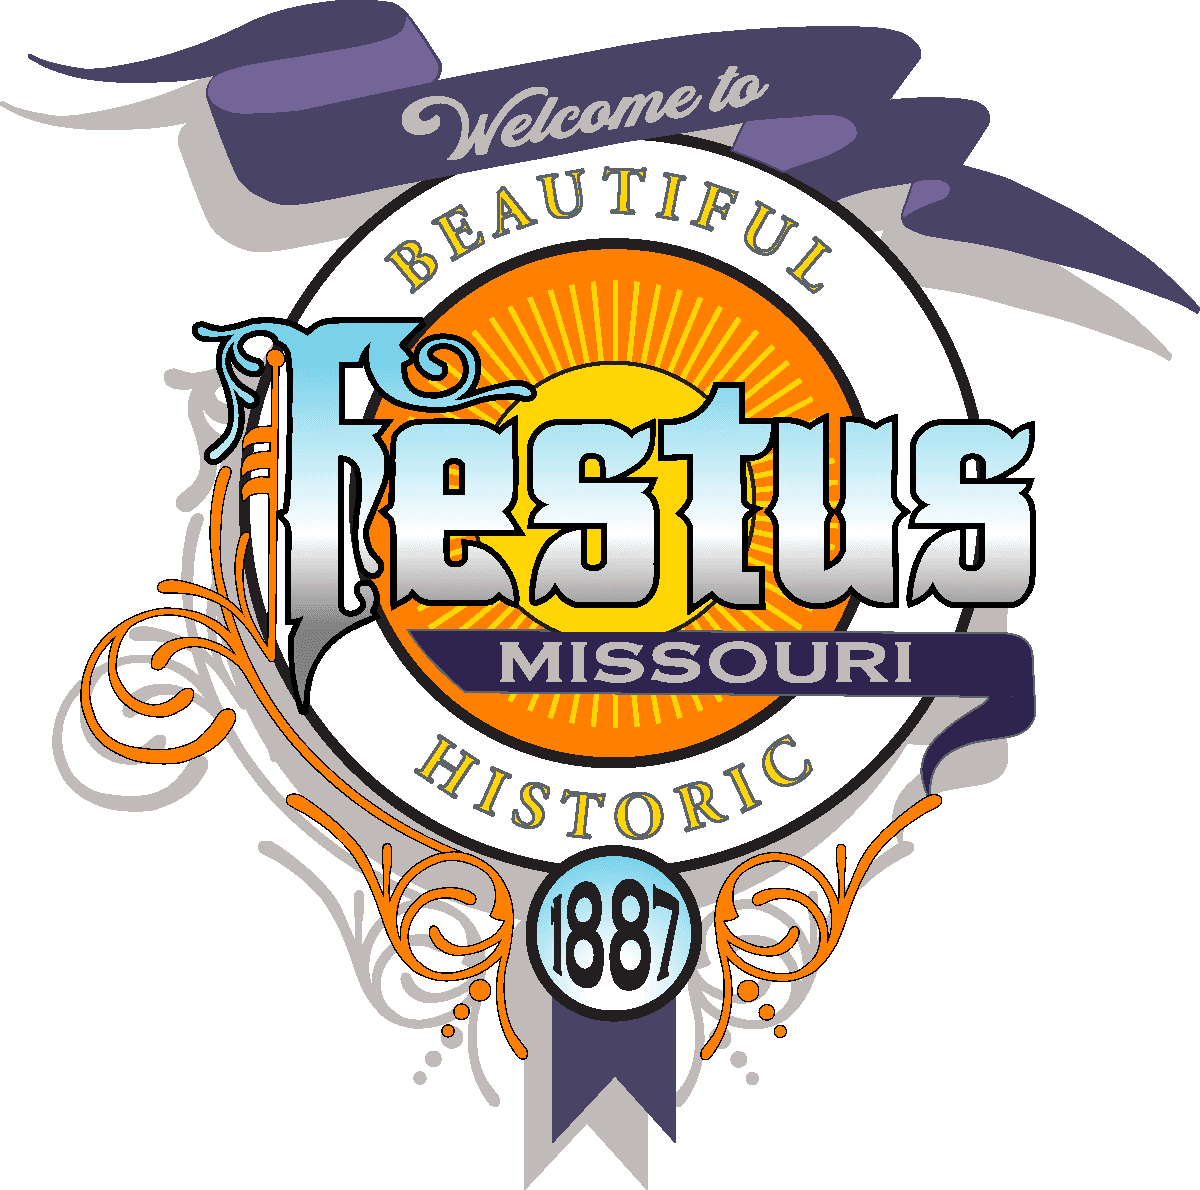 FESTUS Missouri city logo 2020